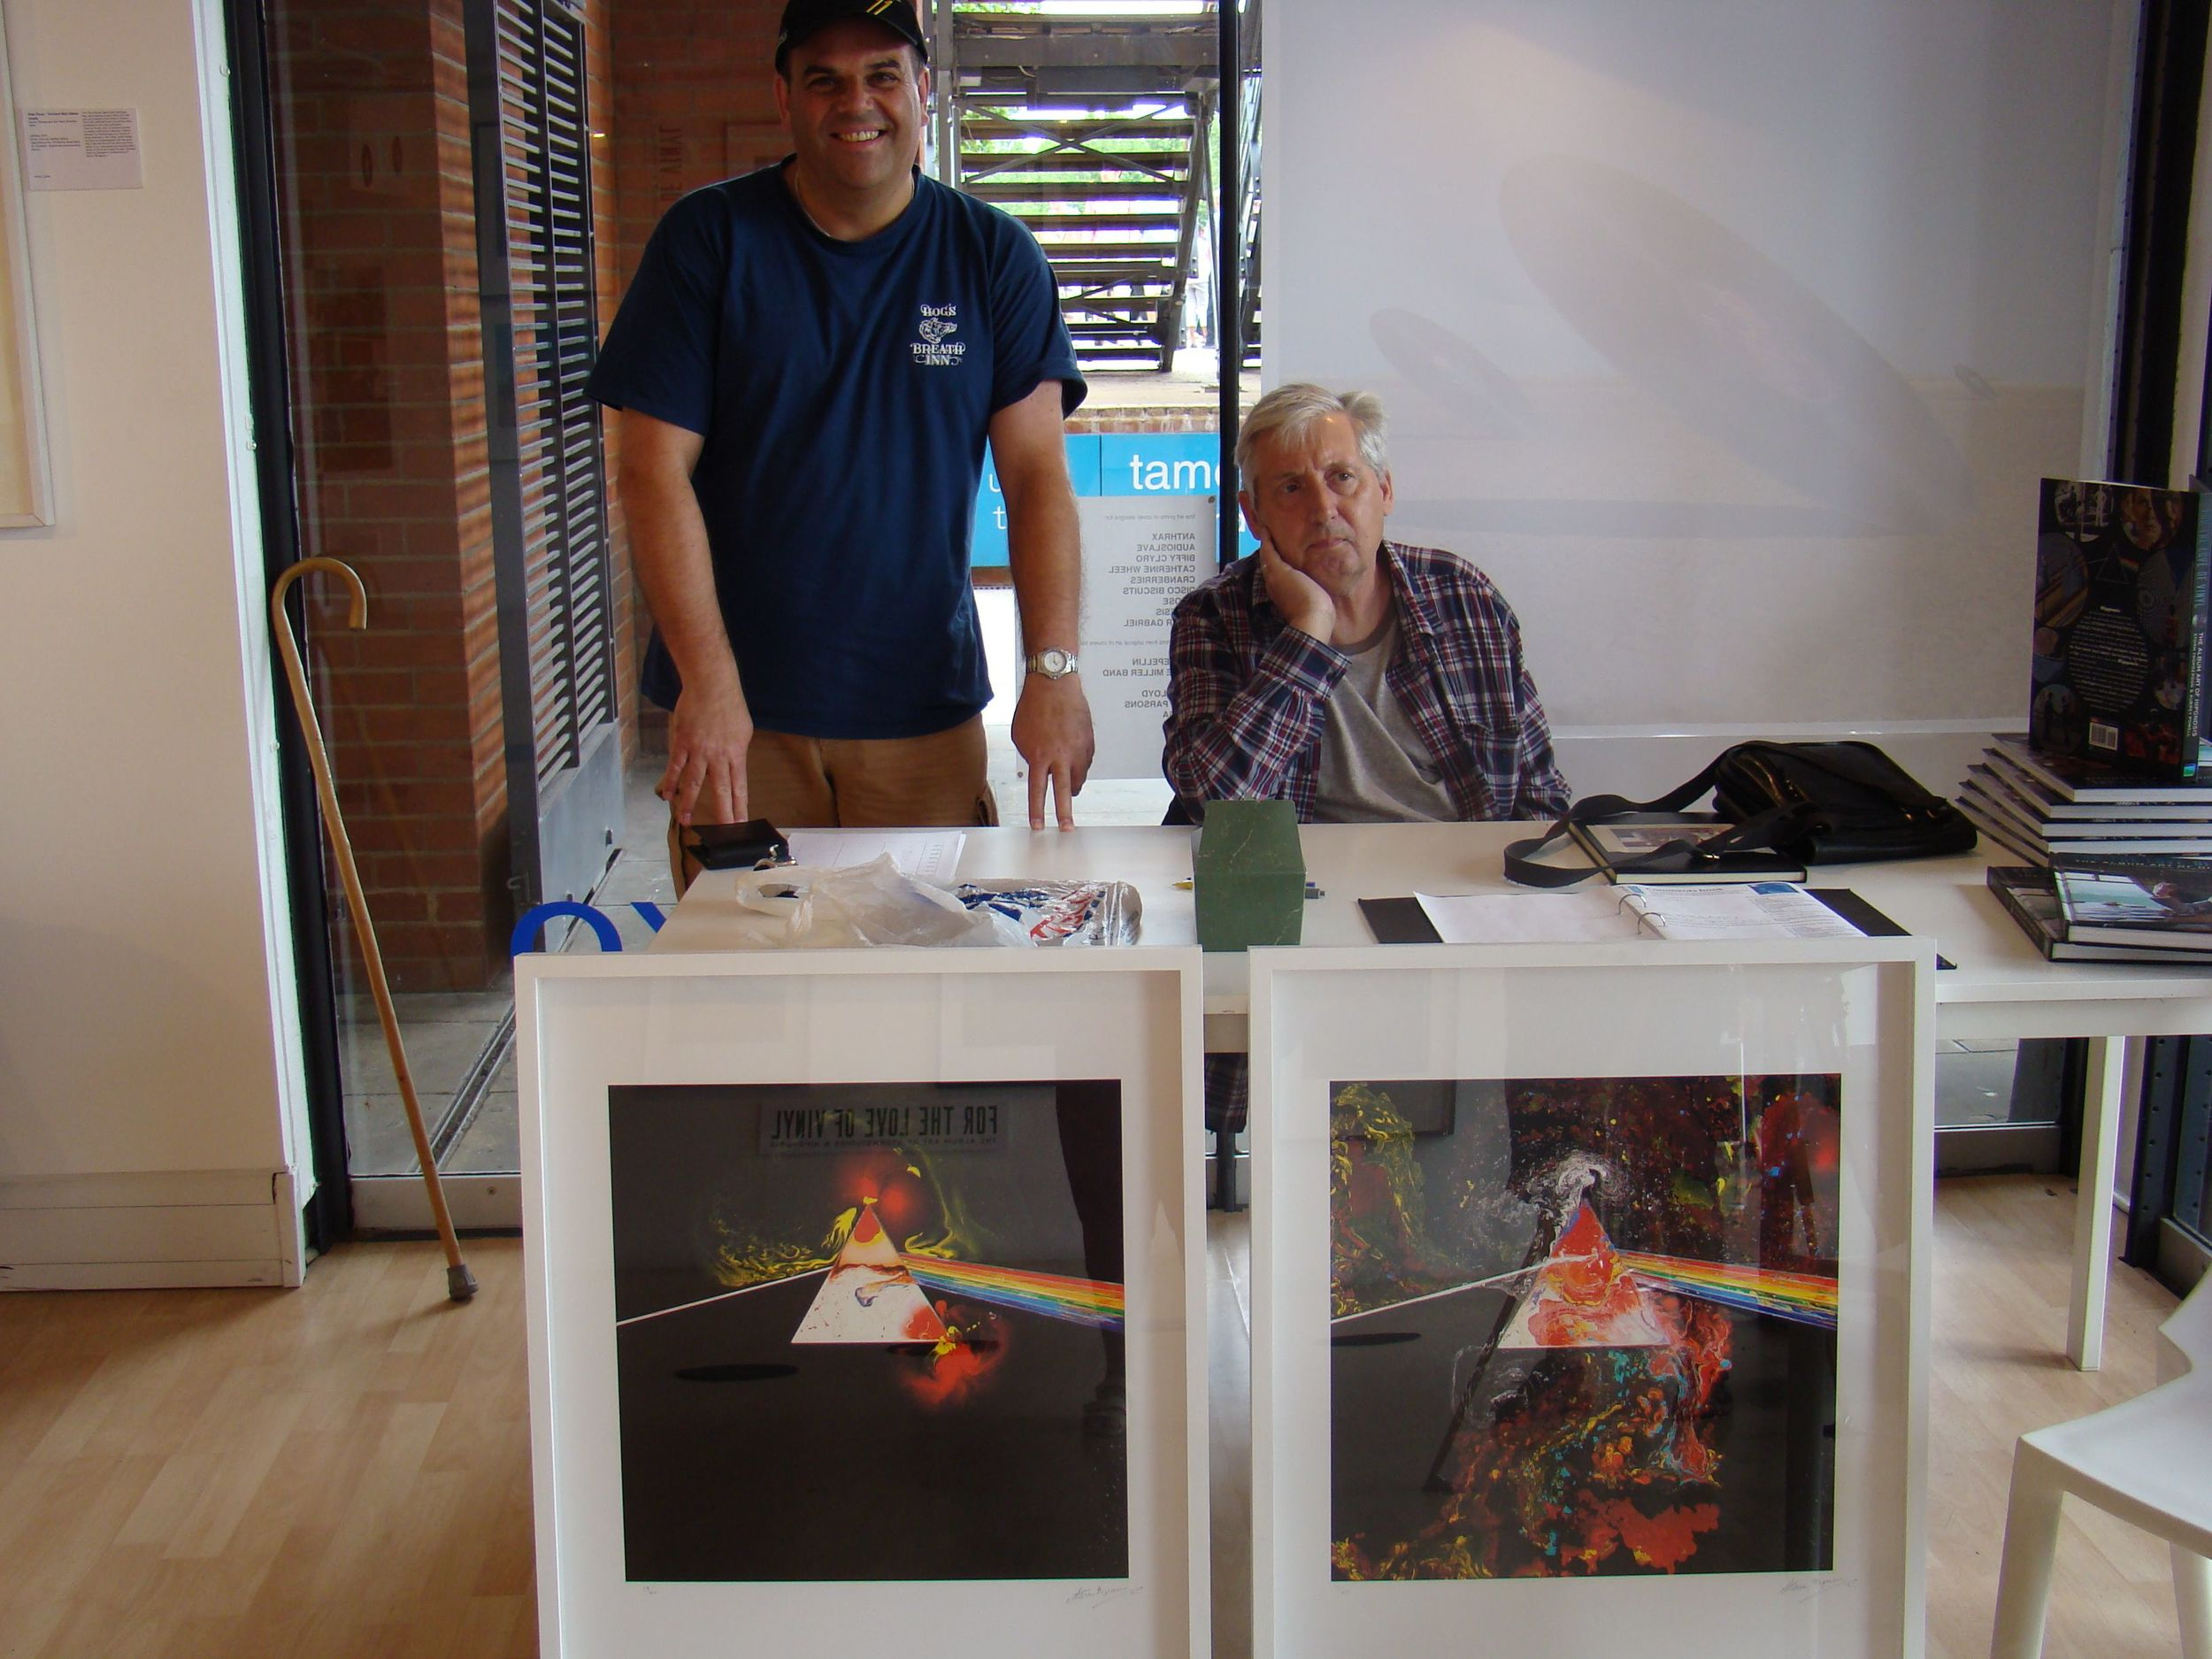 Storm Thorgerson and another satisfied customer